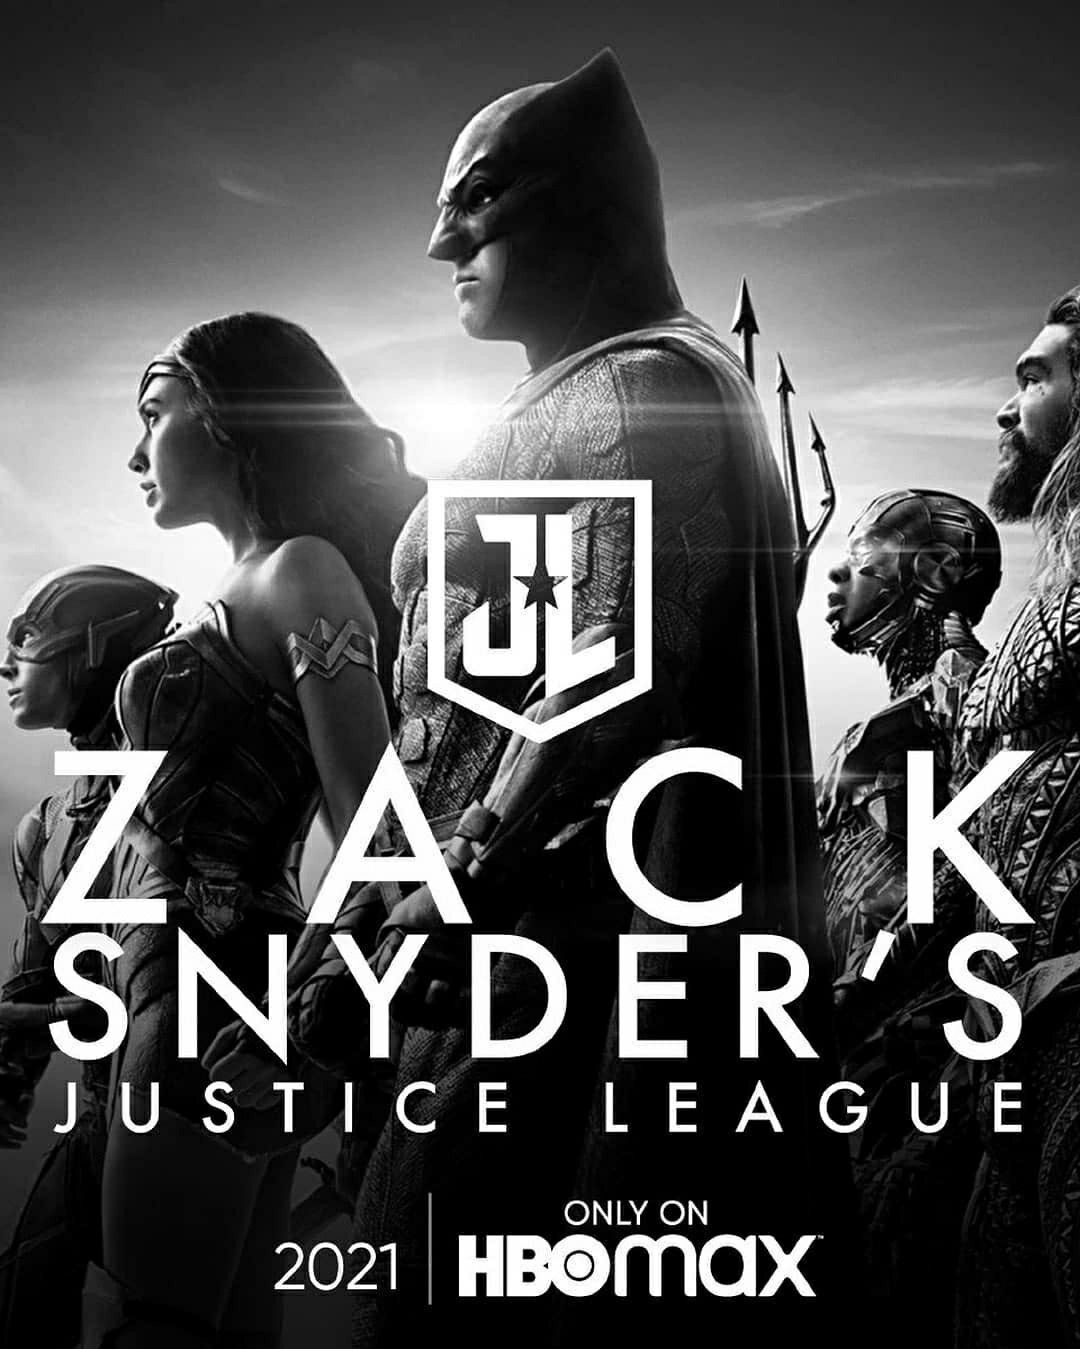 Pin by Richard Channing on DC in 2020 Justice league